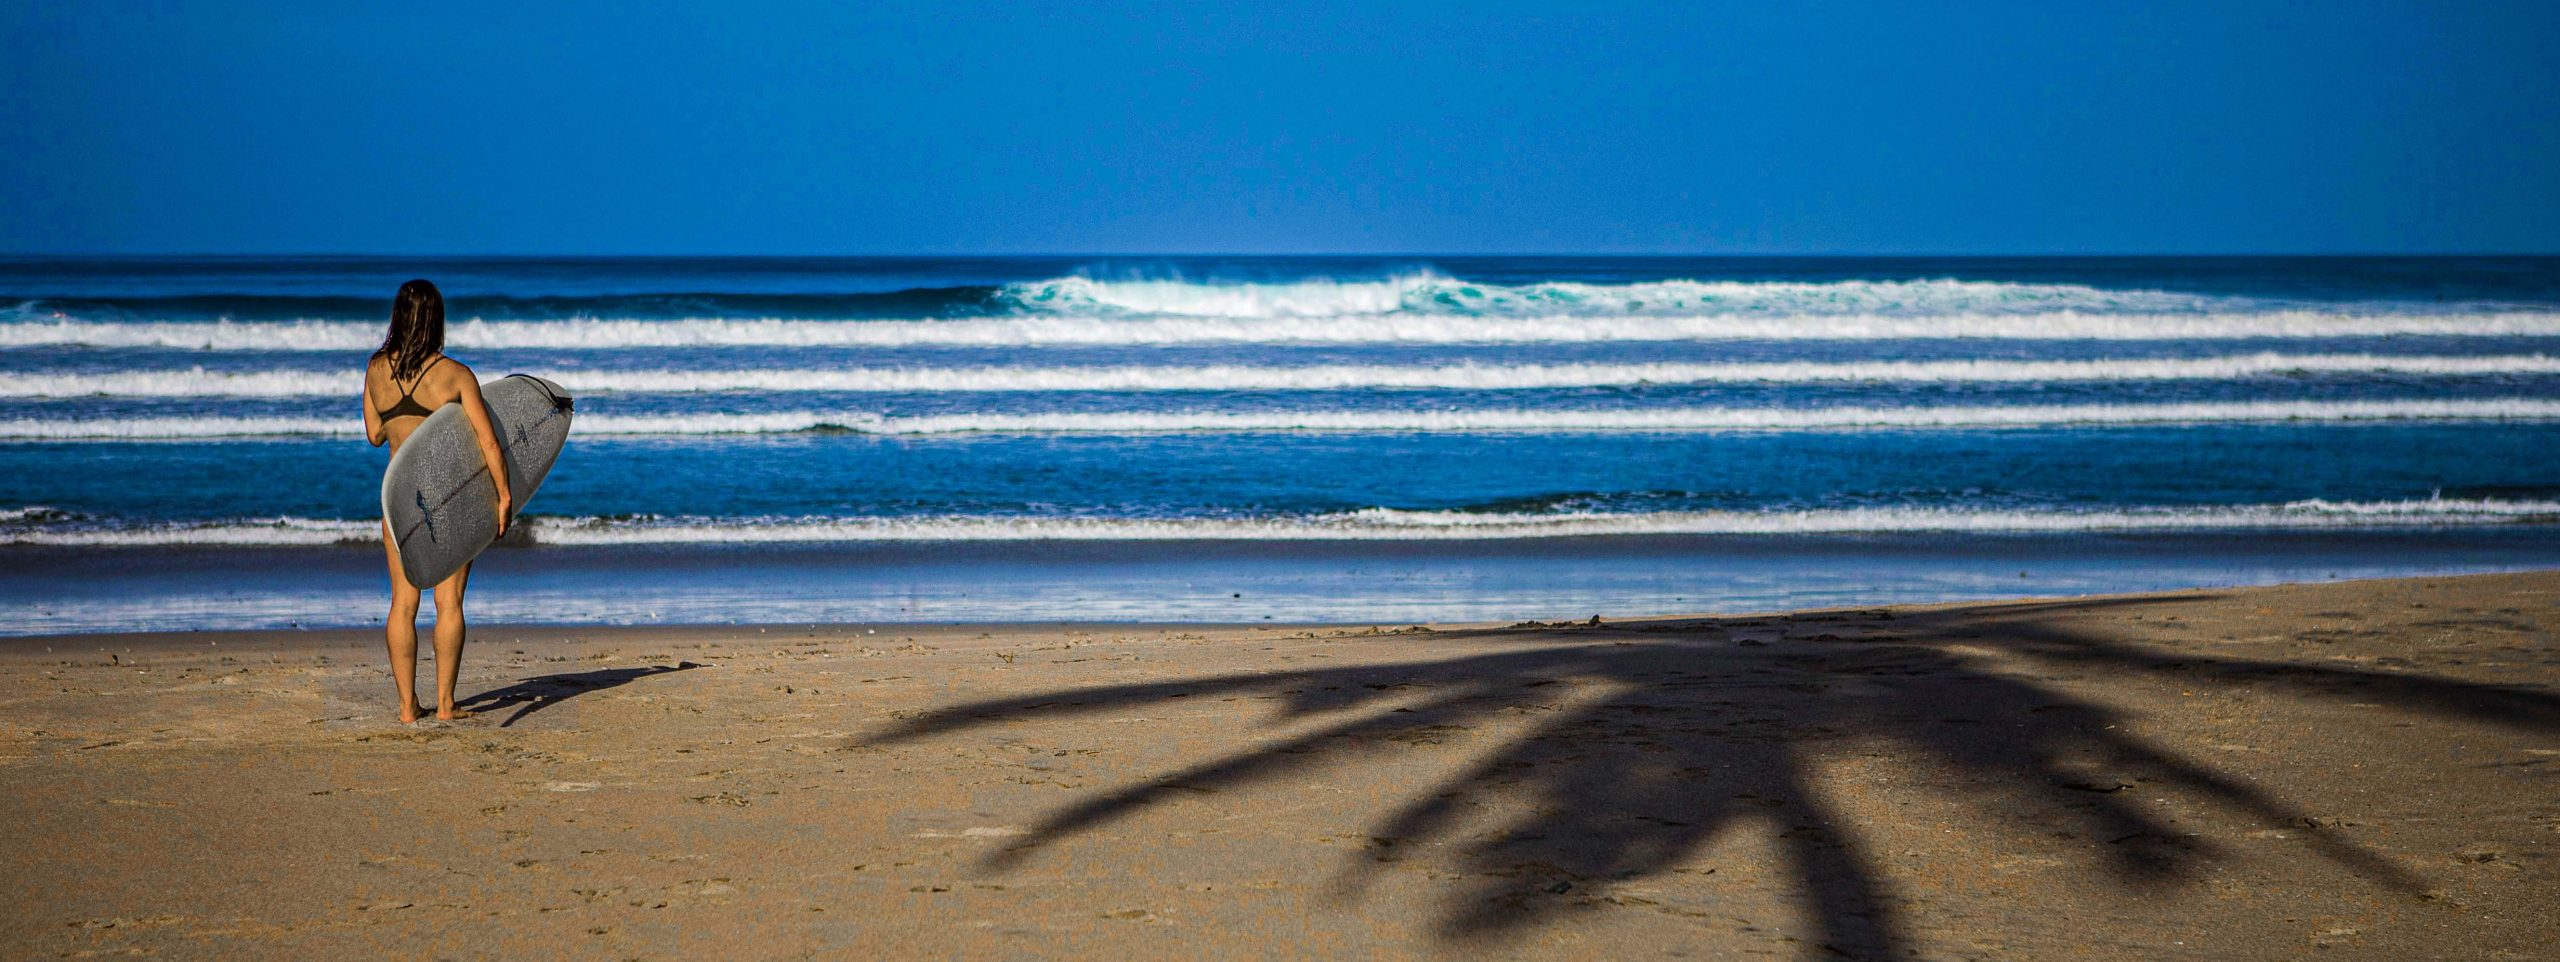 Costa Rica Surfing Guide